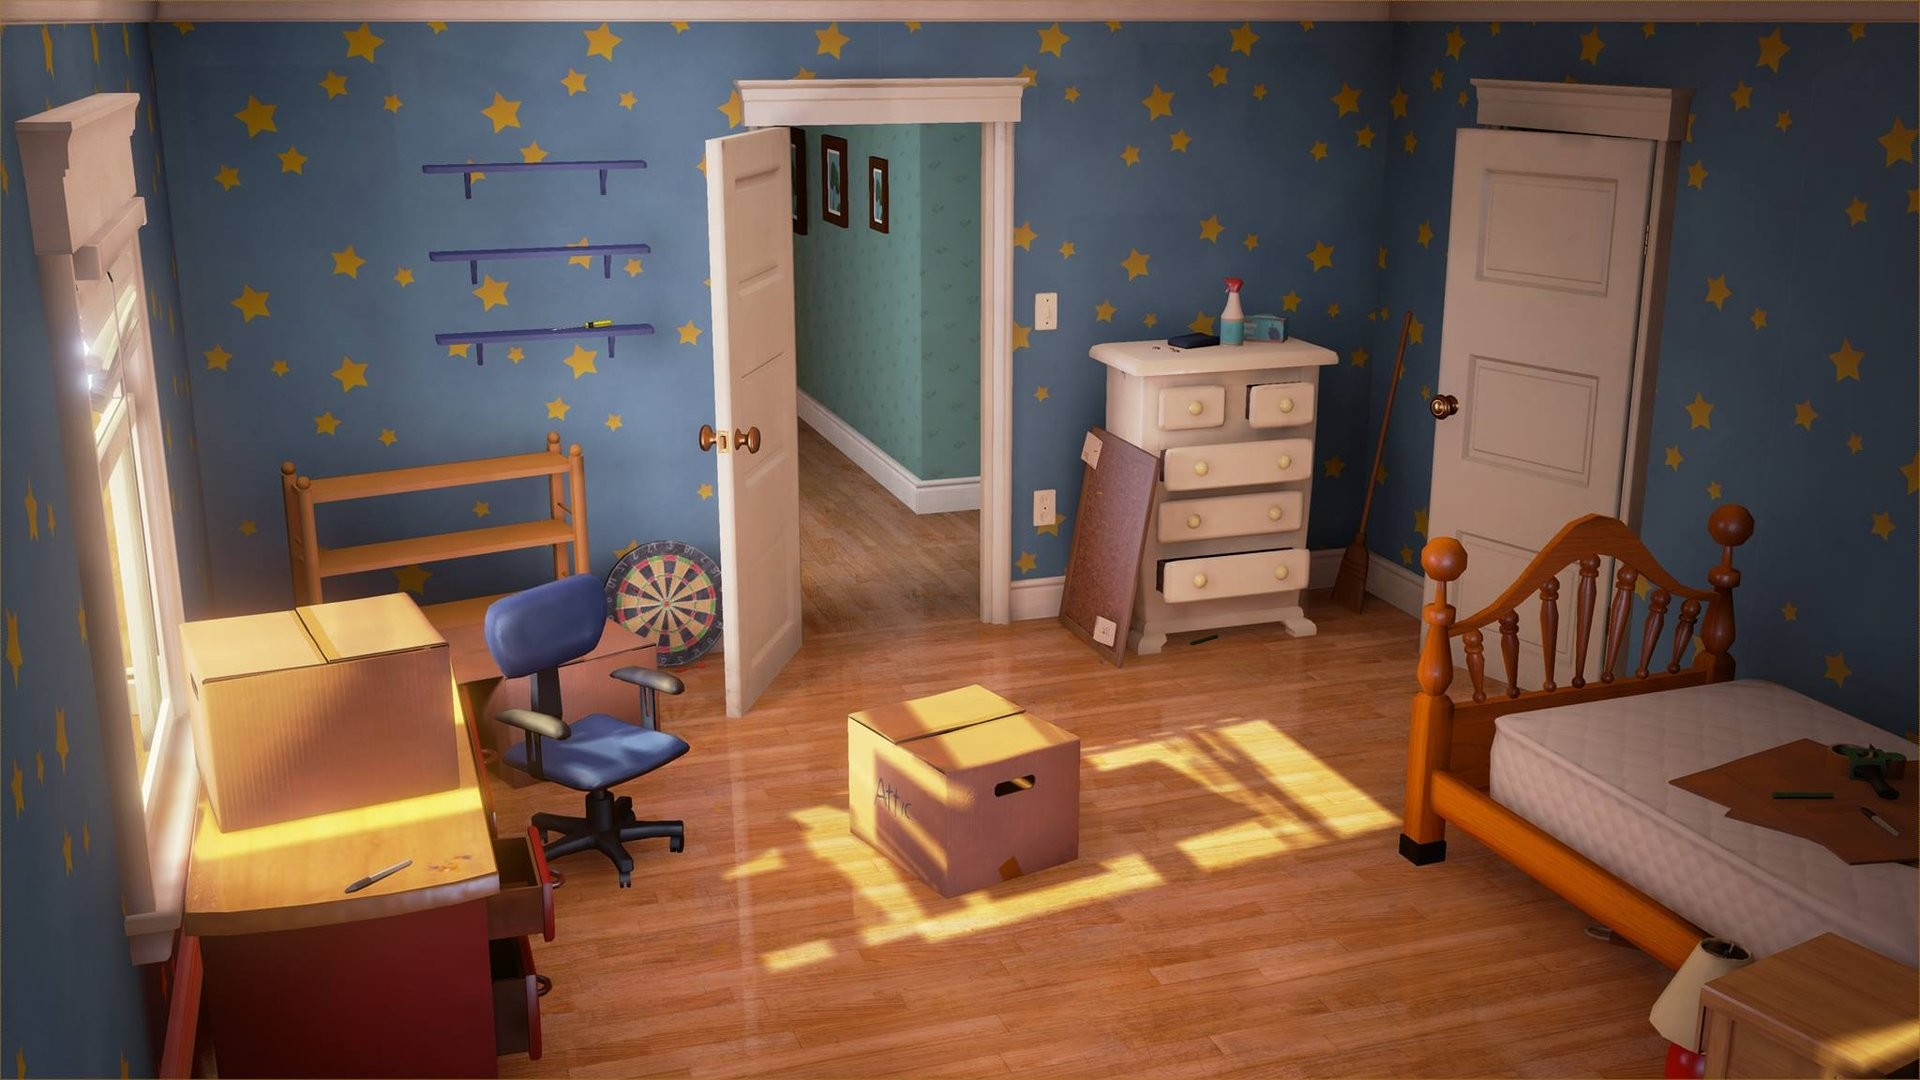 Andys Wallpaper Toy Story 66 Images